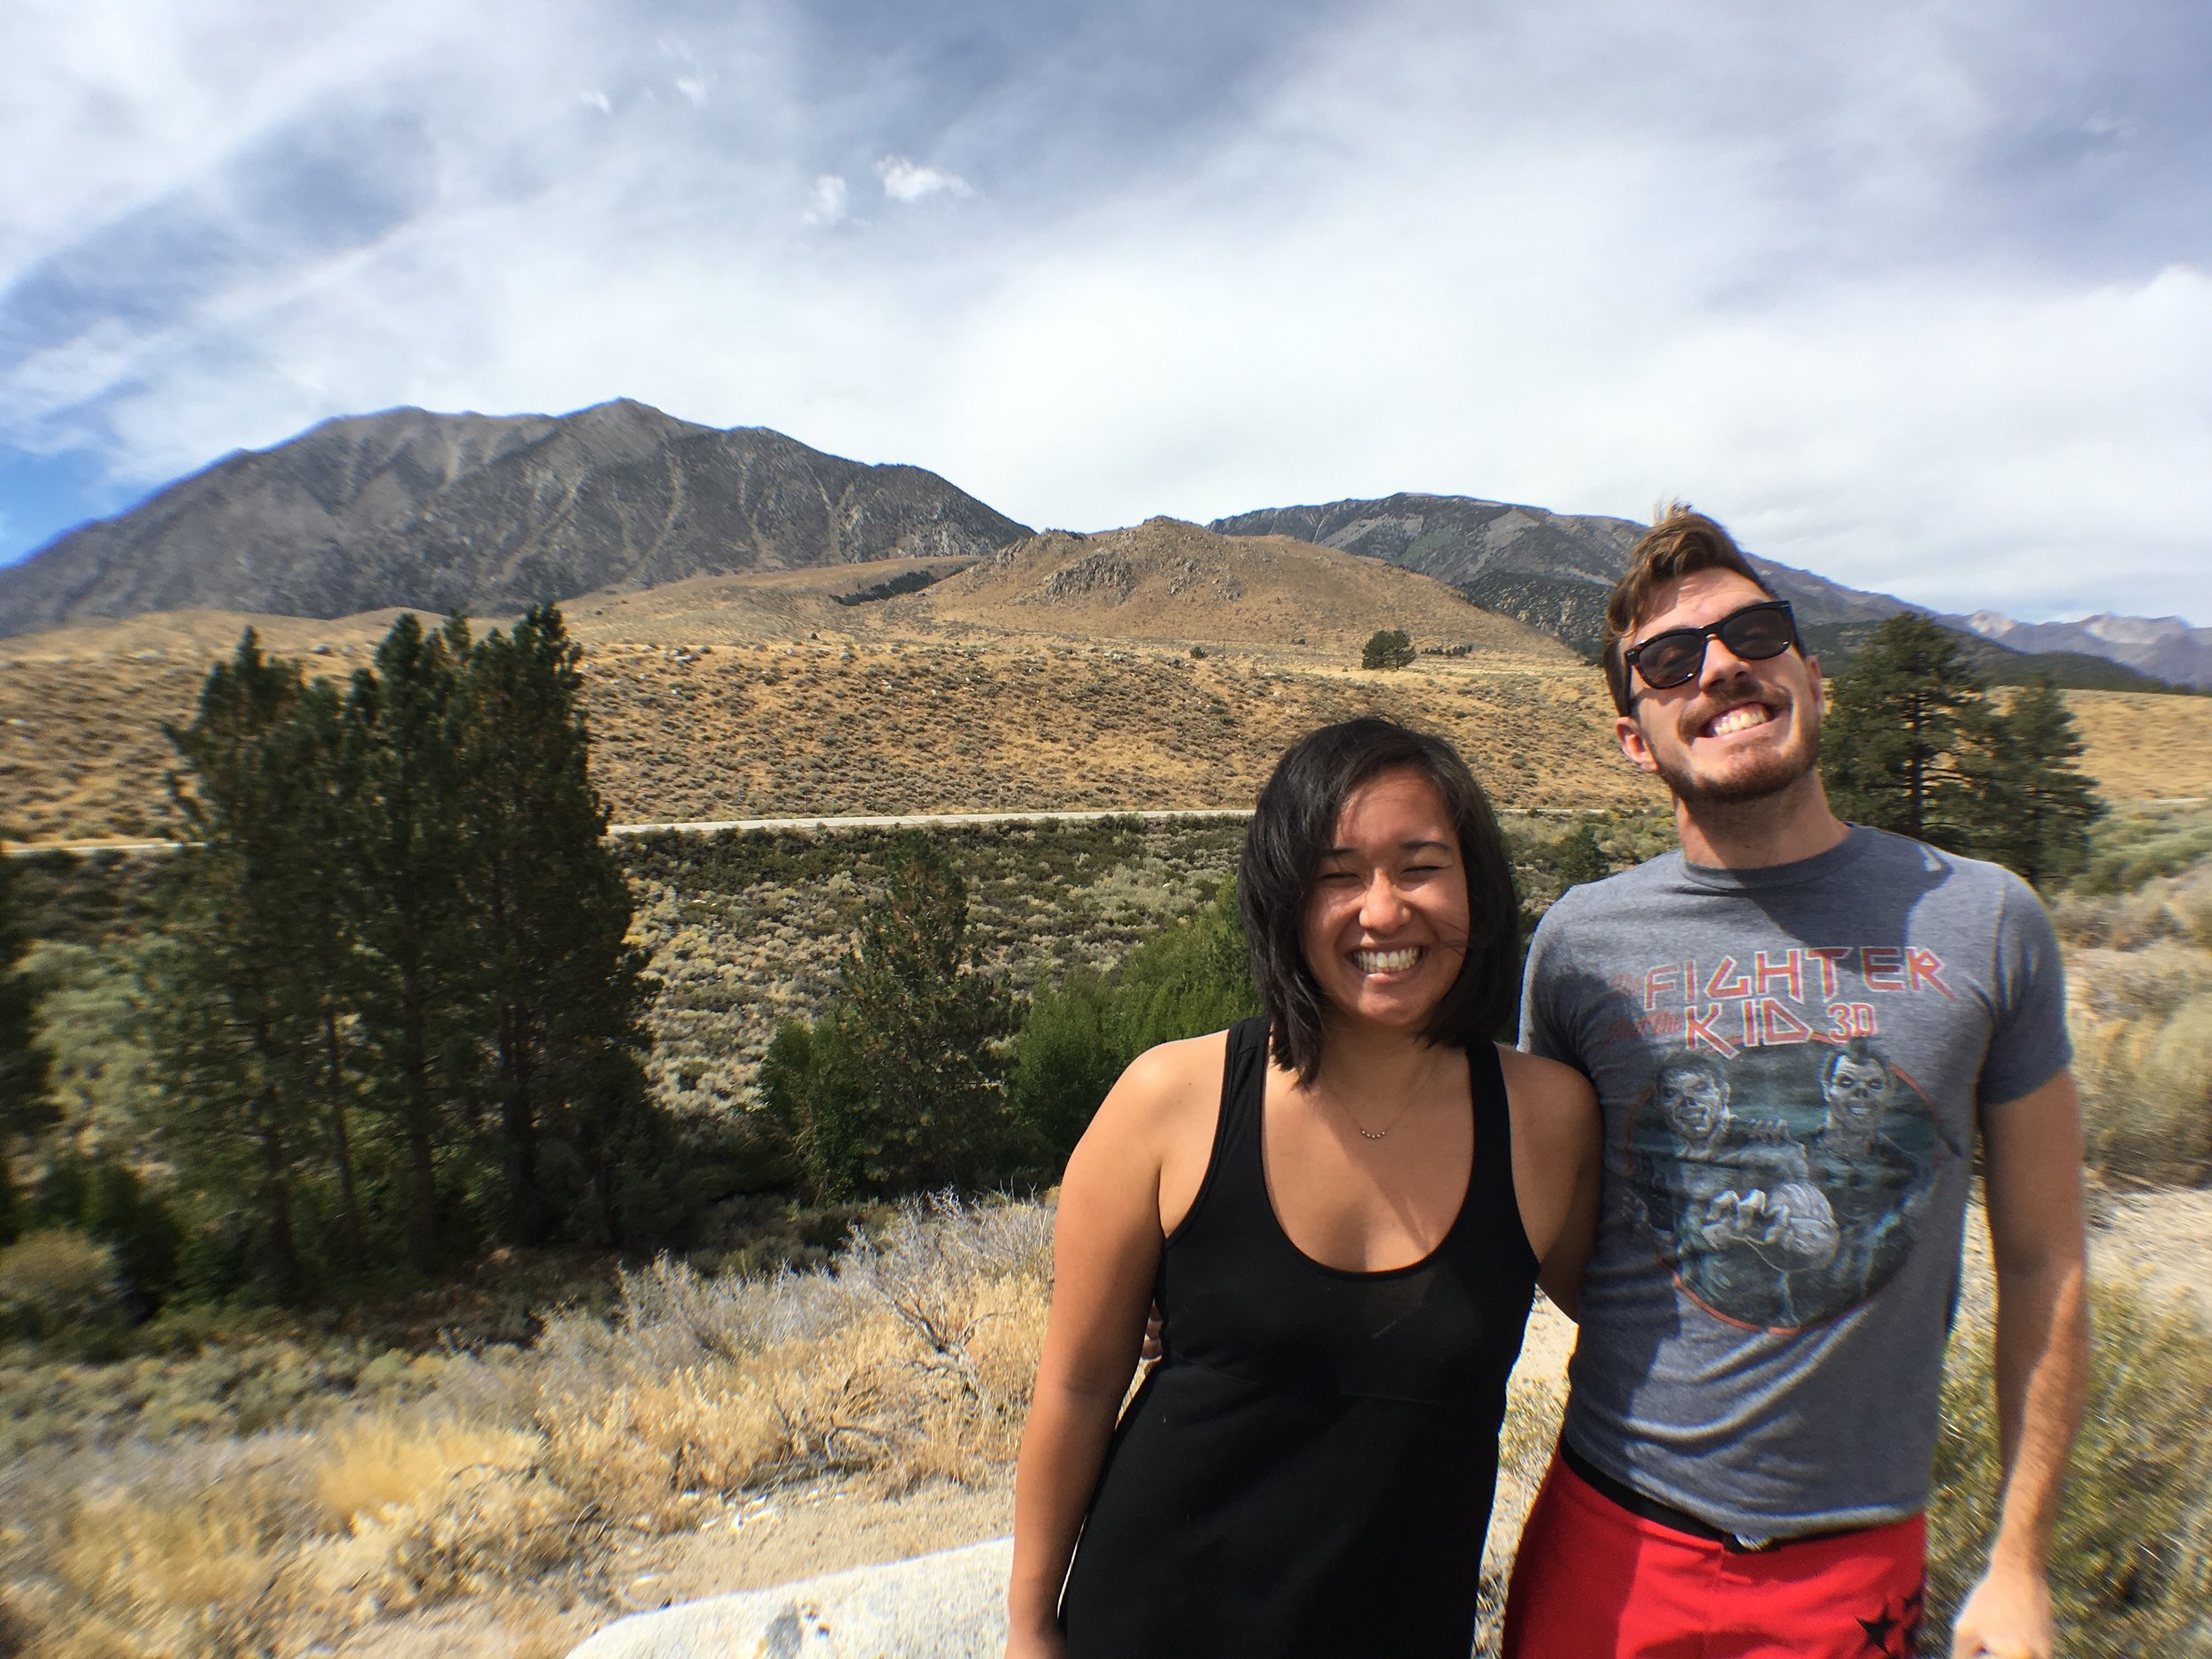 Cheese fest photo op from one of our first road trips together to Lake Tahoe, NV